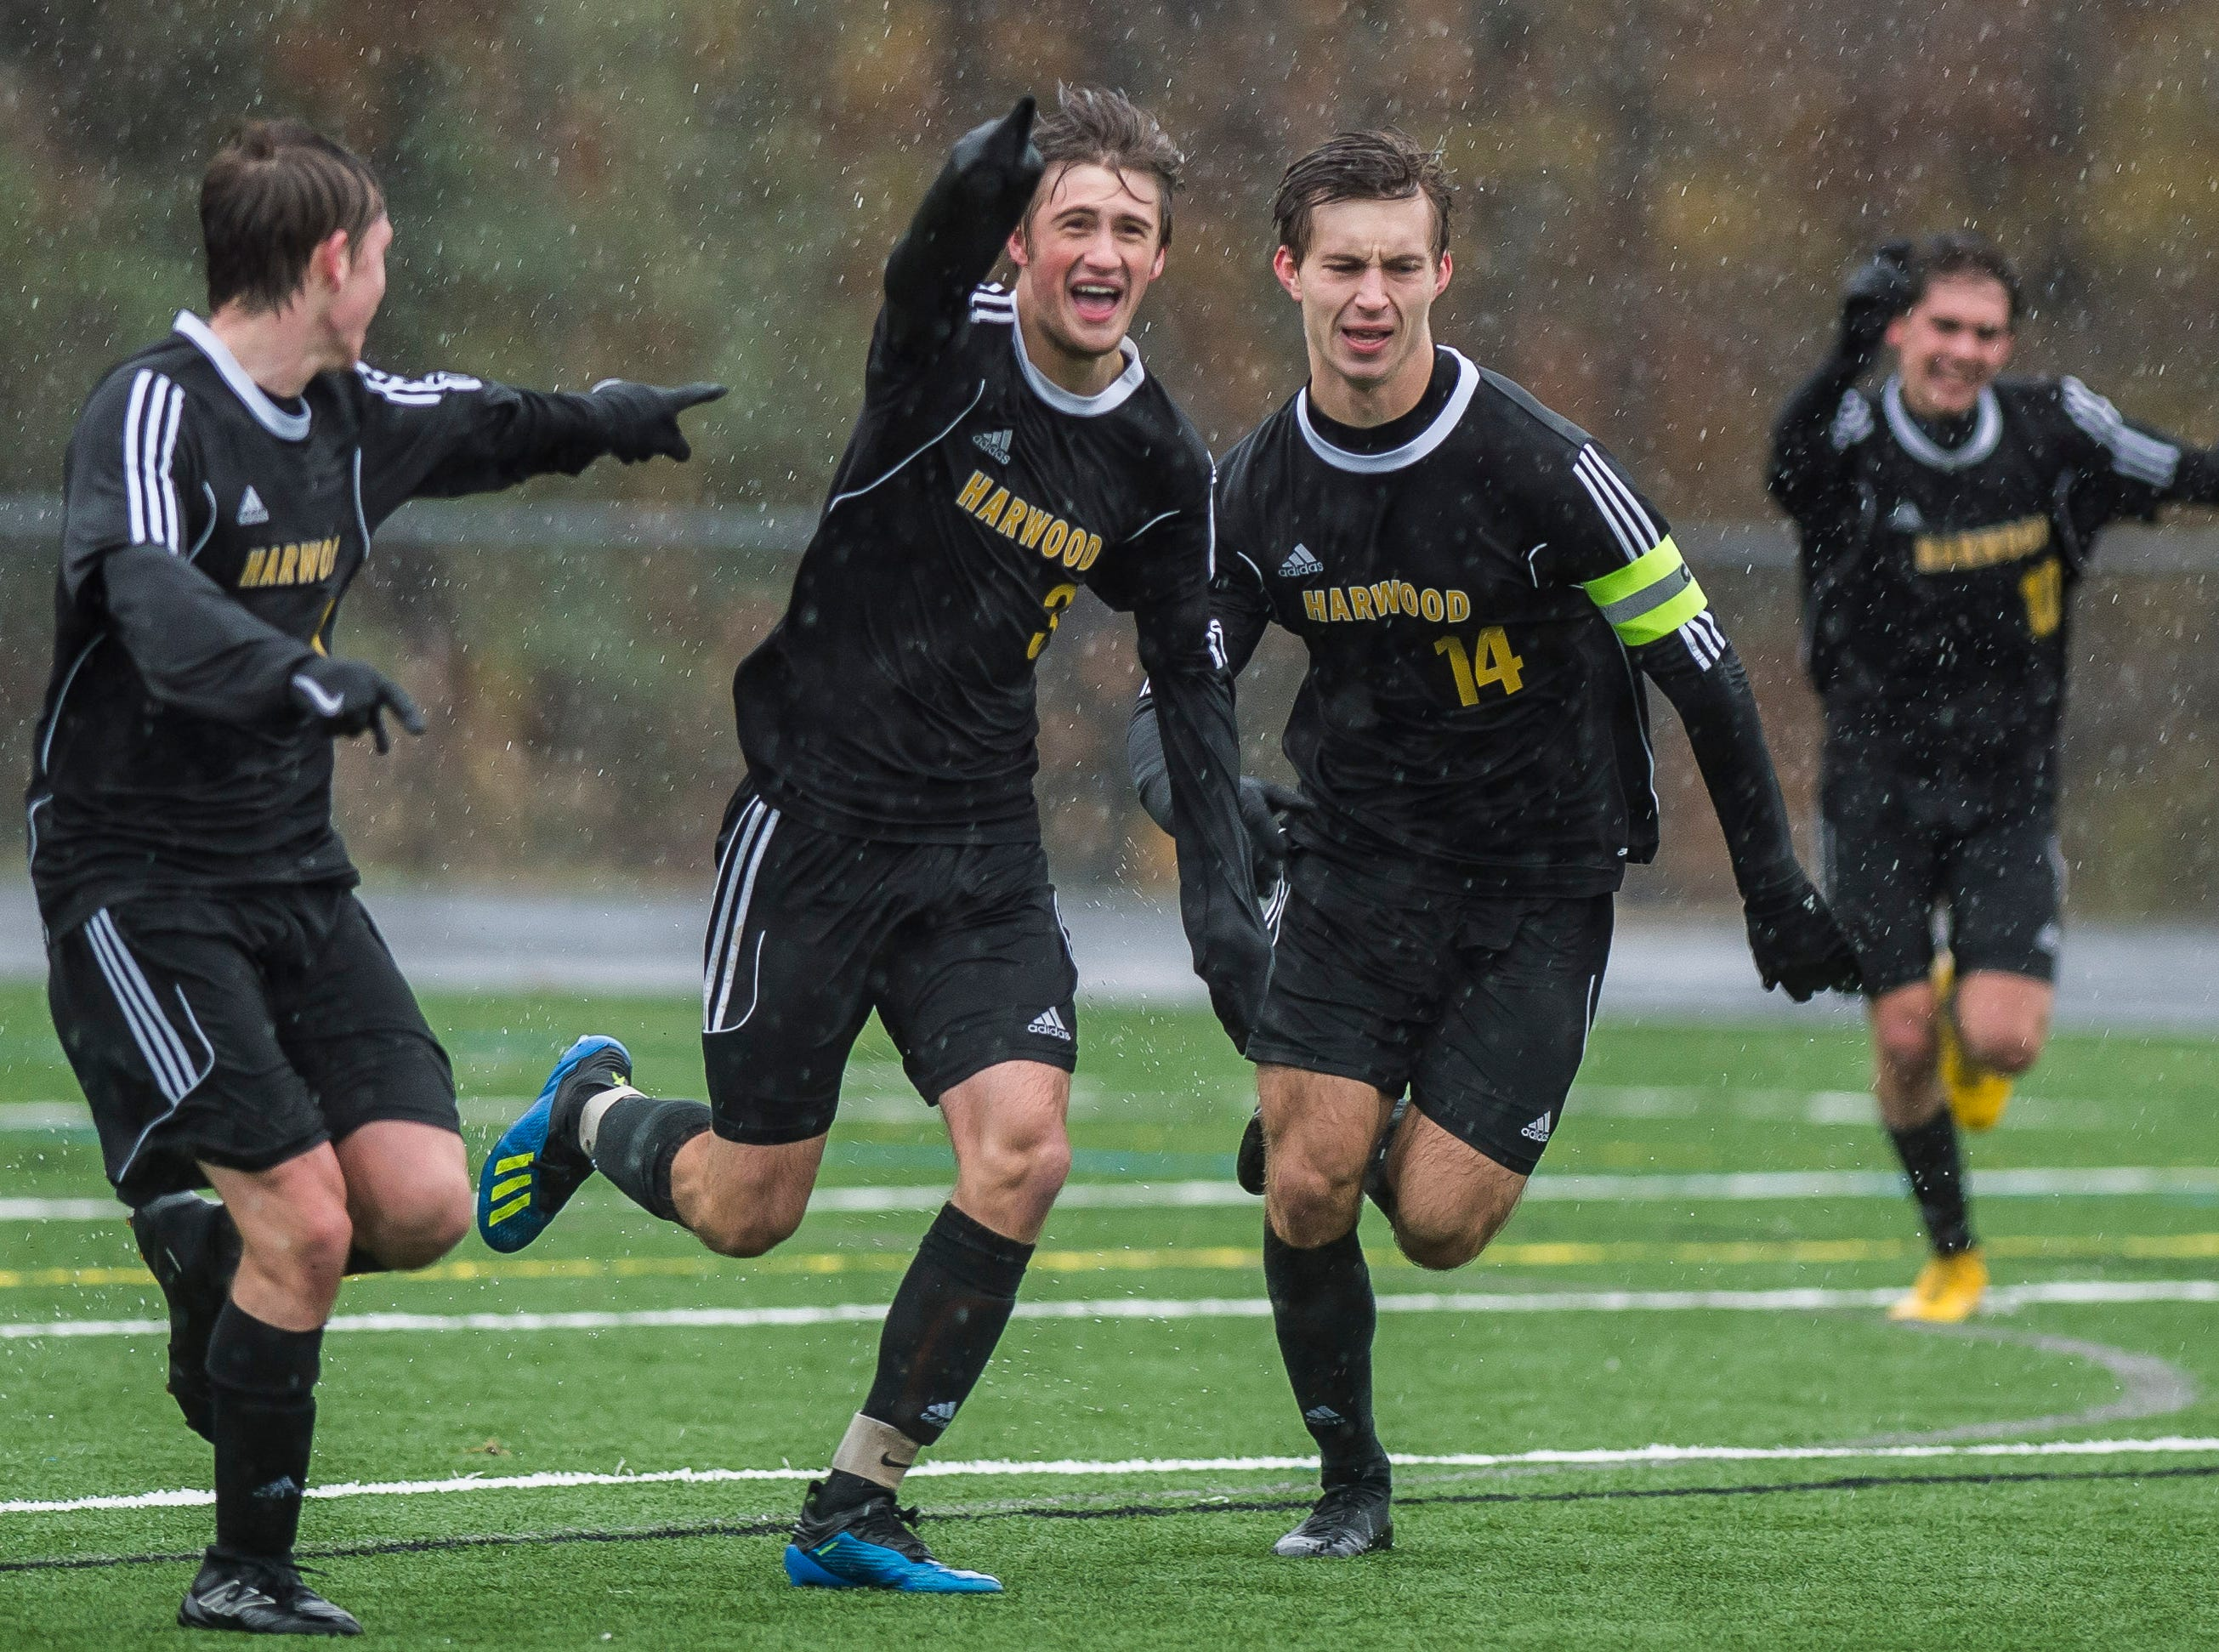 Harwood #3 Will Lapointe celebrate scoring during their Div. 2 Vermont State high school boy's soccer championship game against Woodstock at South Burlington High School on Saturday, Nov. 3, 2018. Hardwood Union won, 3-0.